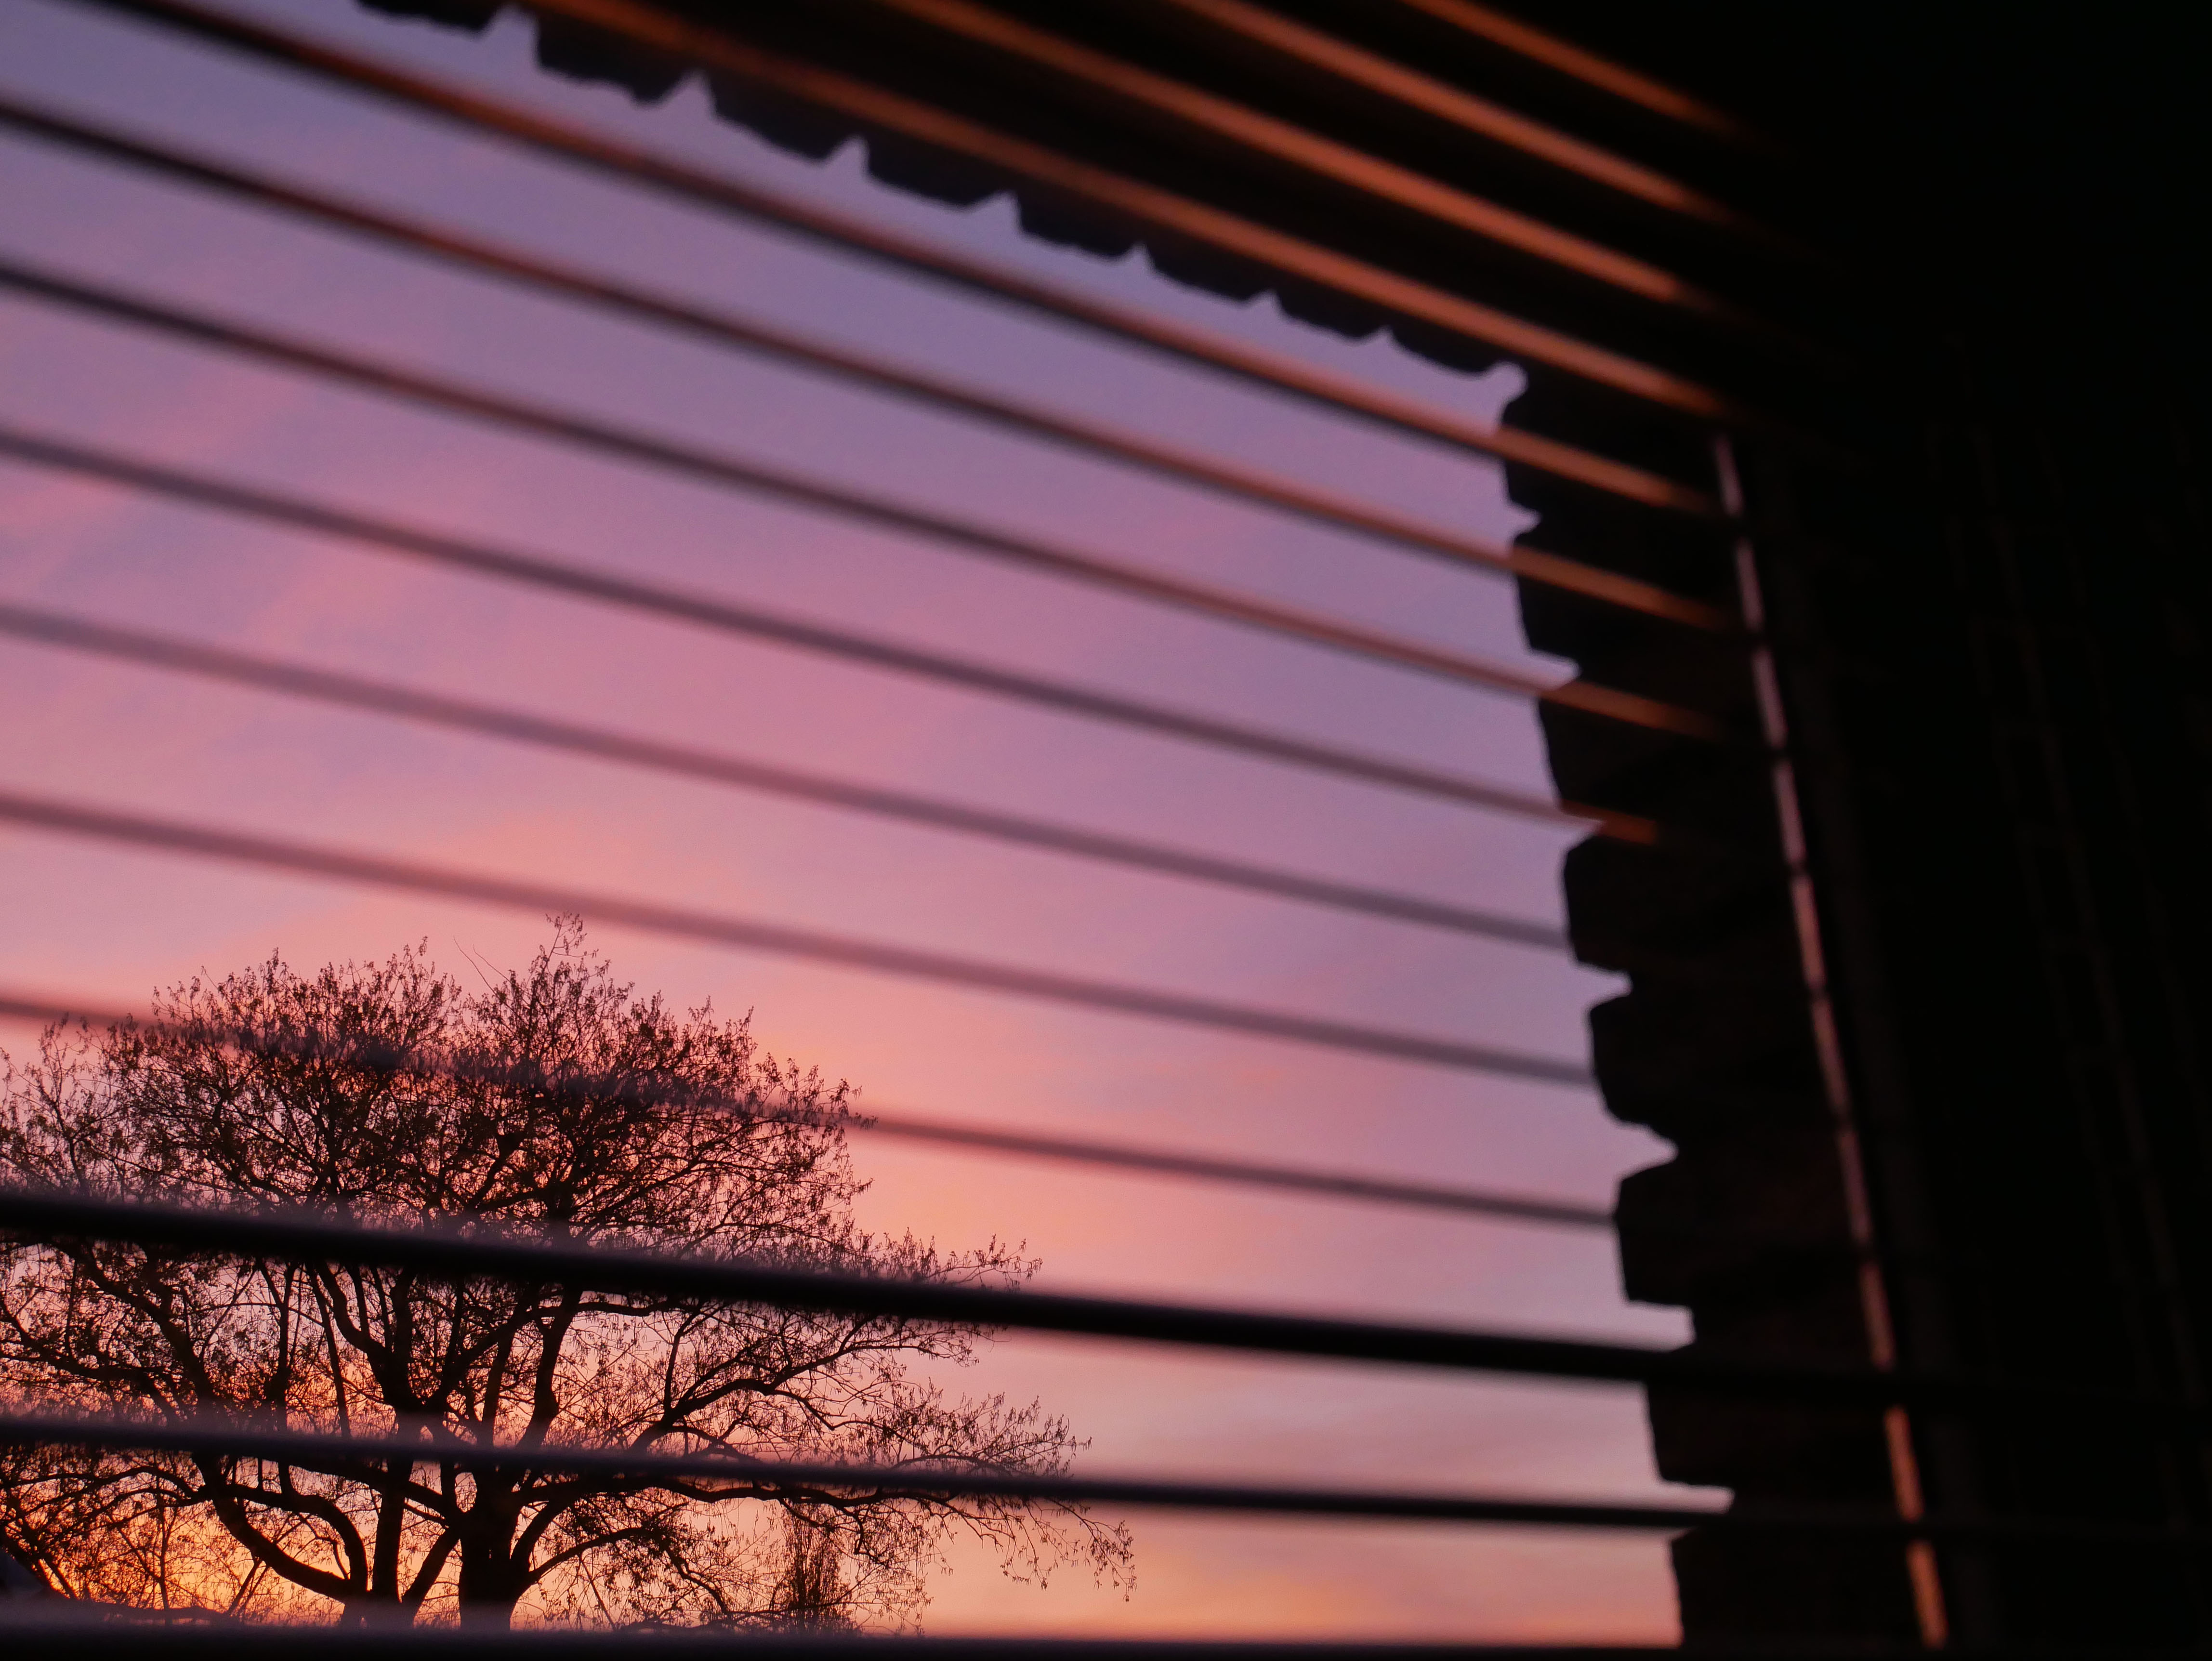 Window view through blinds of a tree and sunset-colored sky